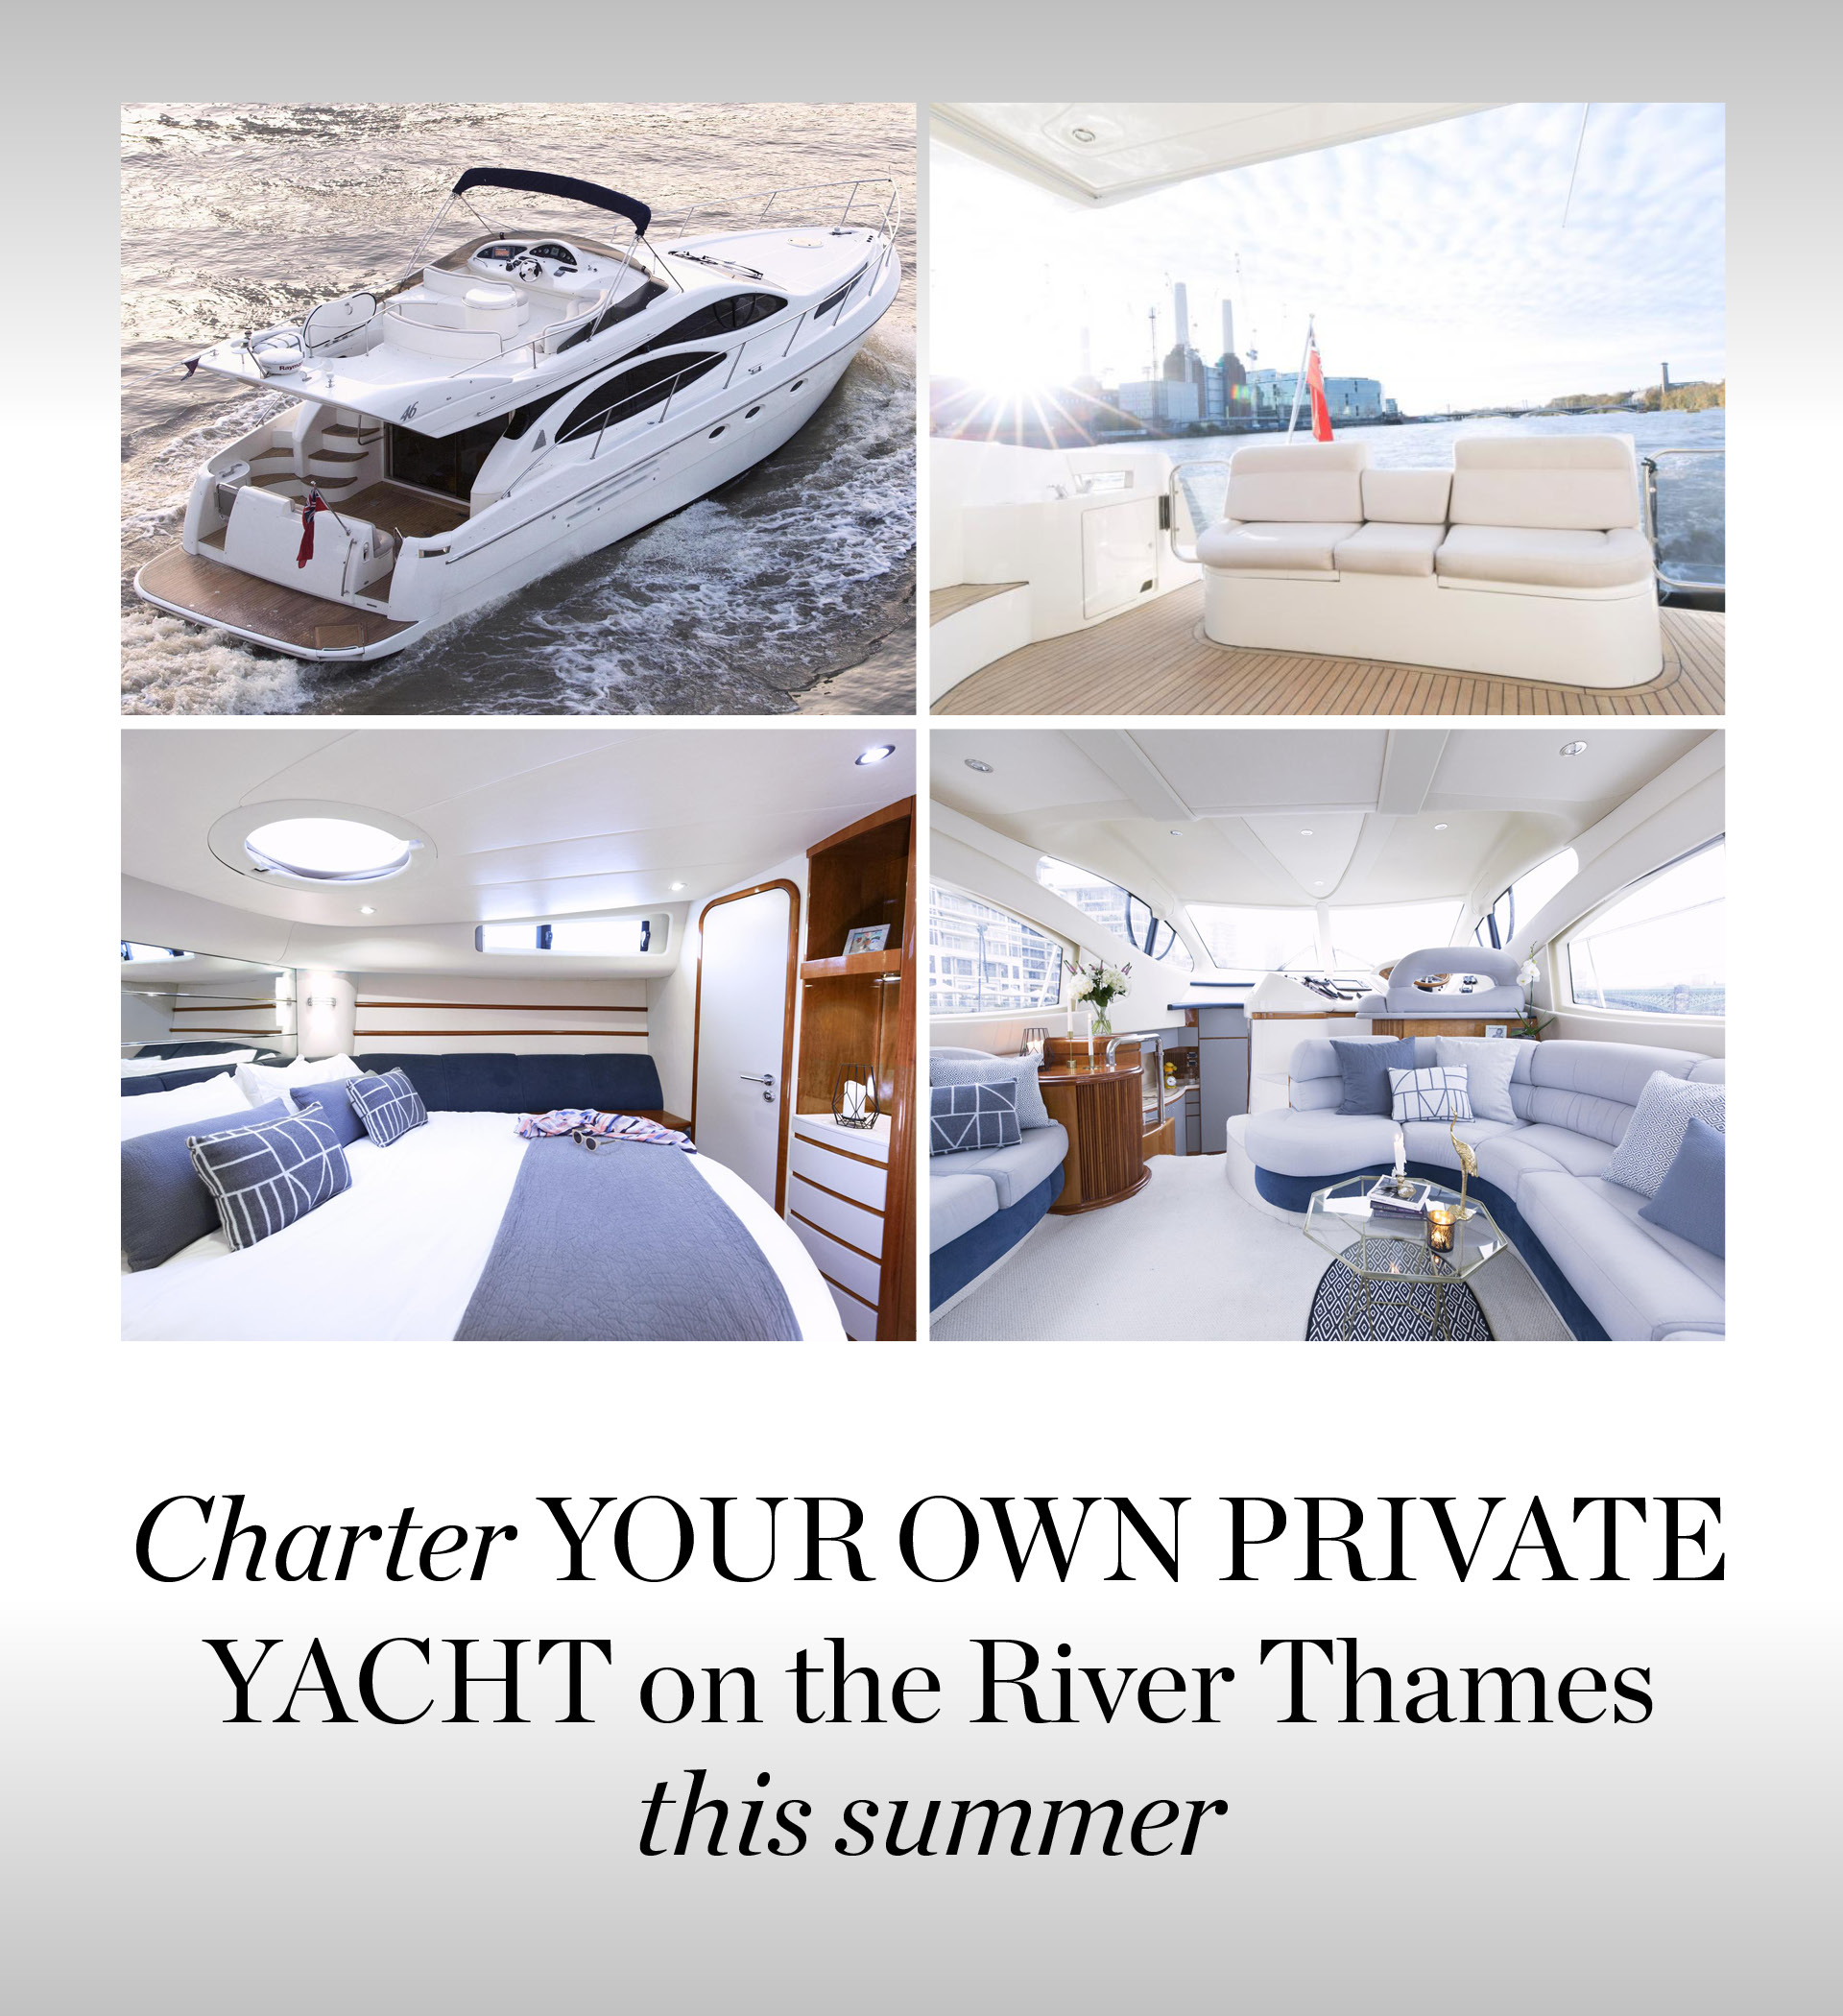 Charter your own private yacht on the River Thames this summer